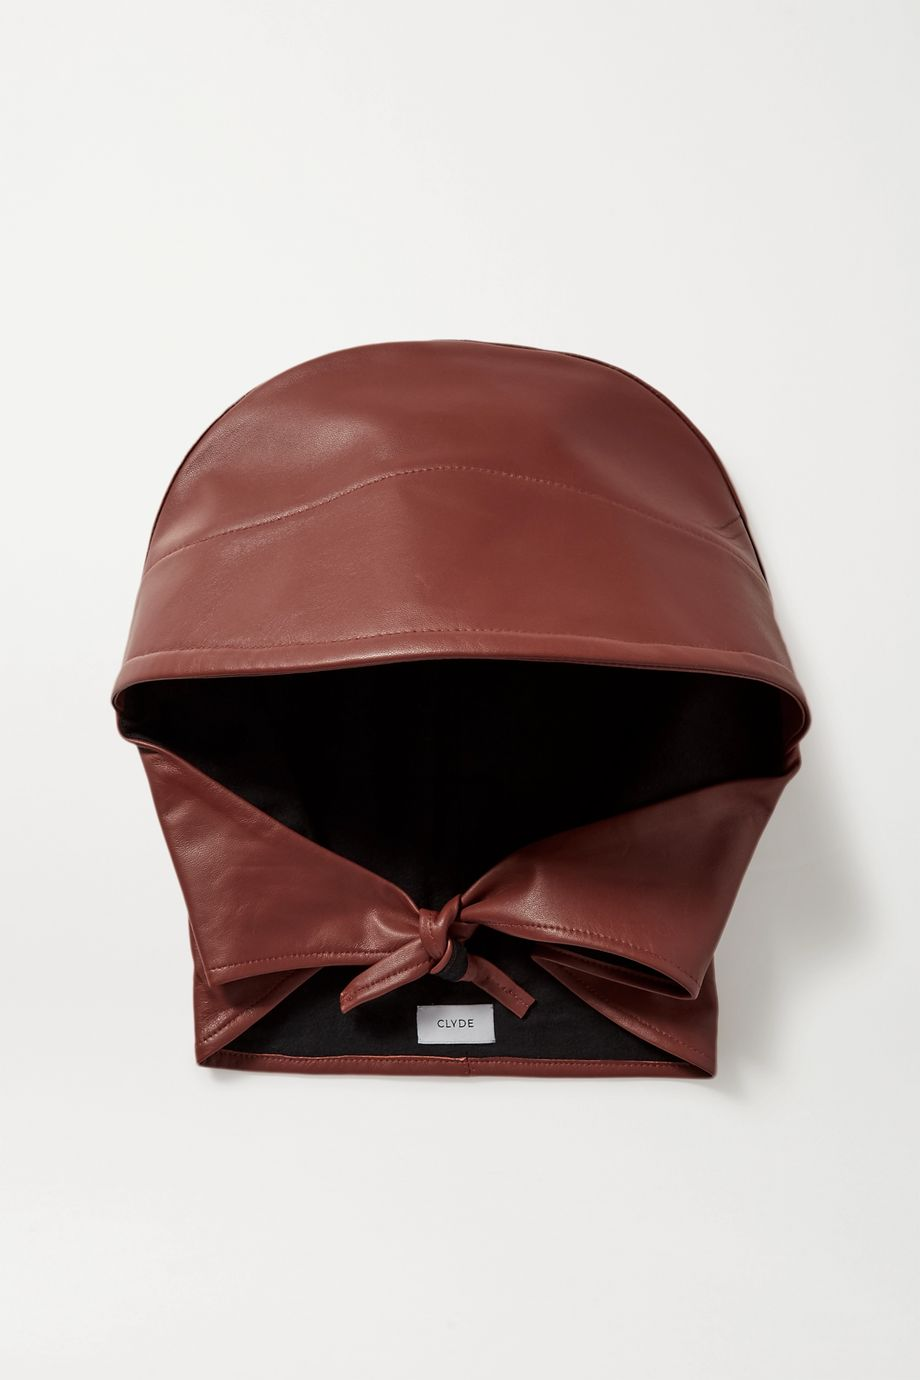 CLYDE Leather hat